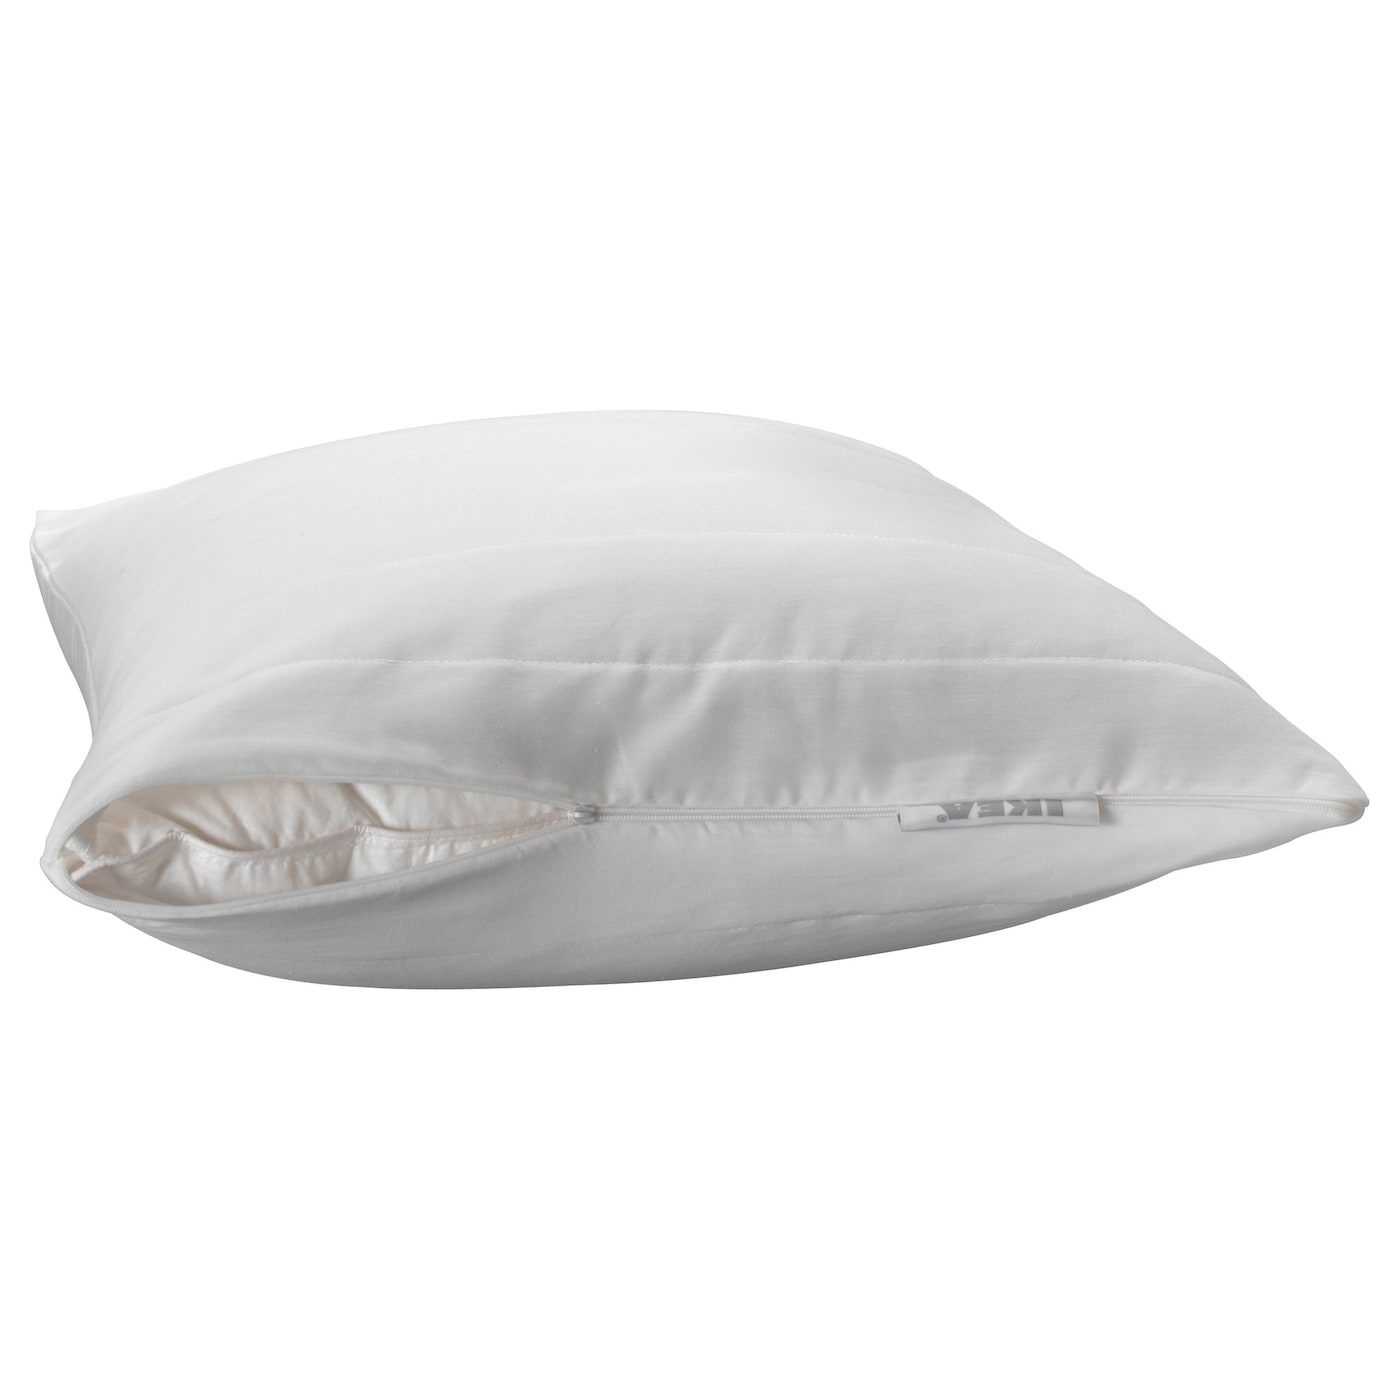 fortytwo d cotton cor isleep set pillow protector protectors home furniture